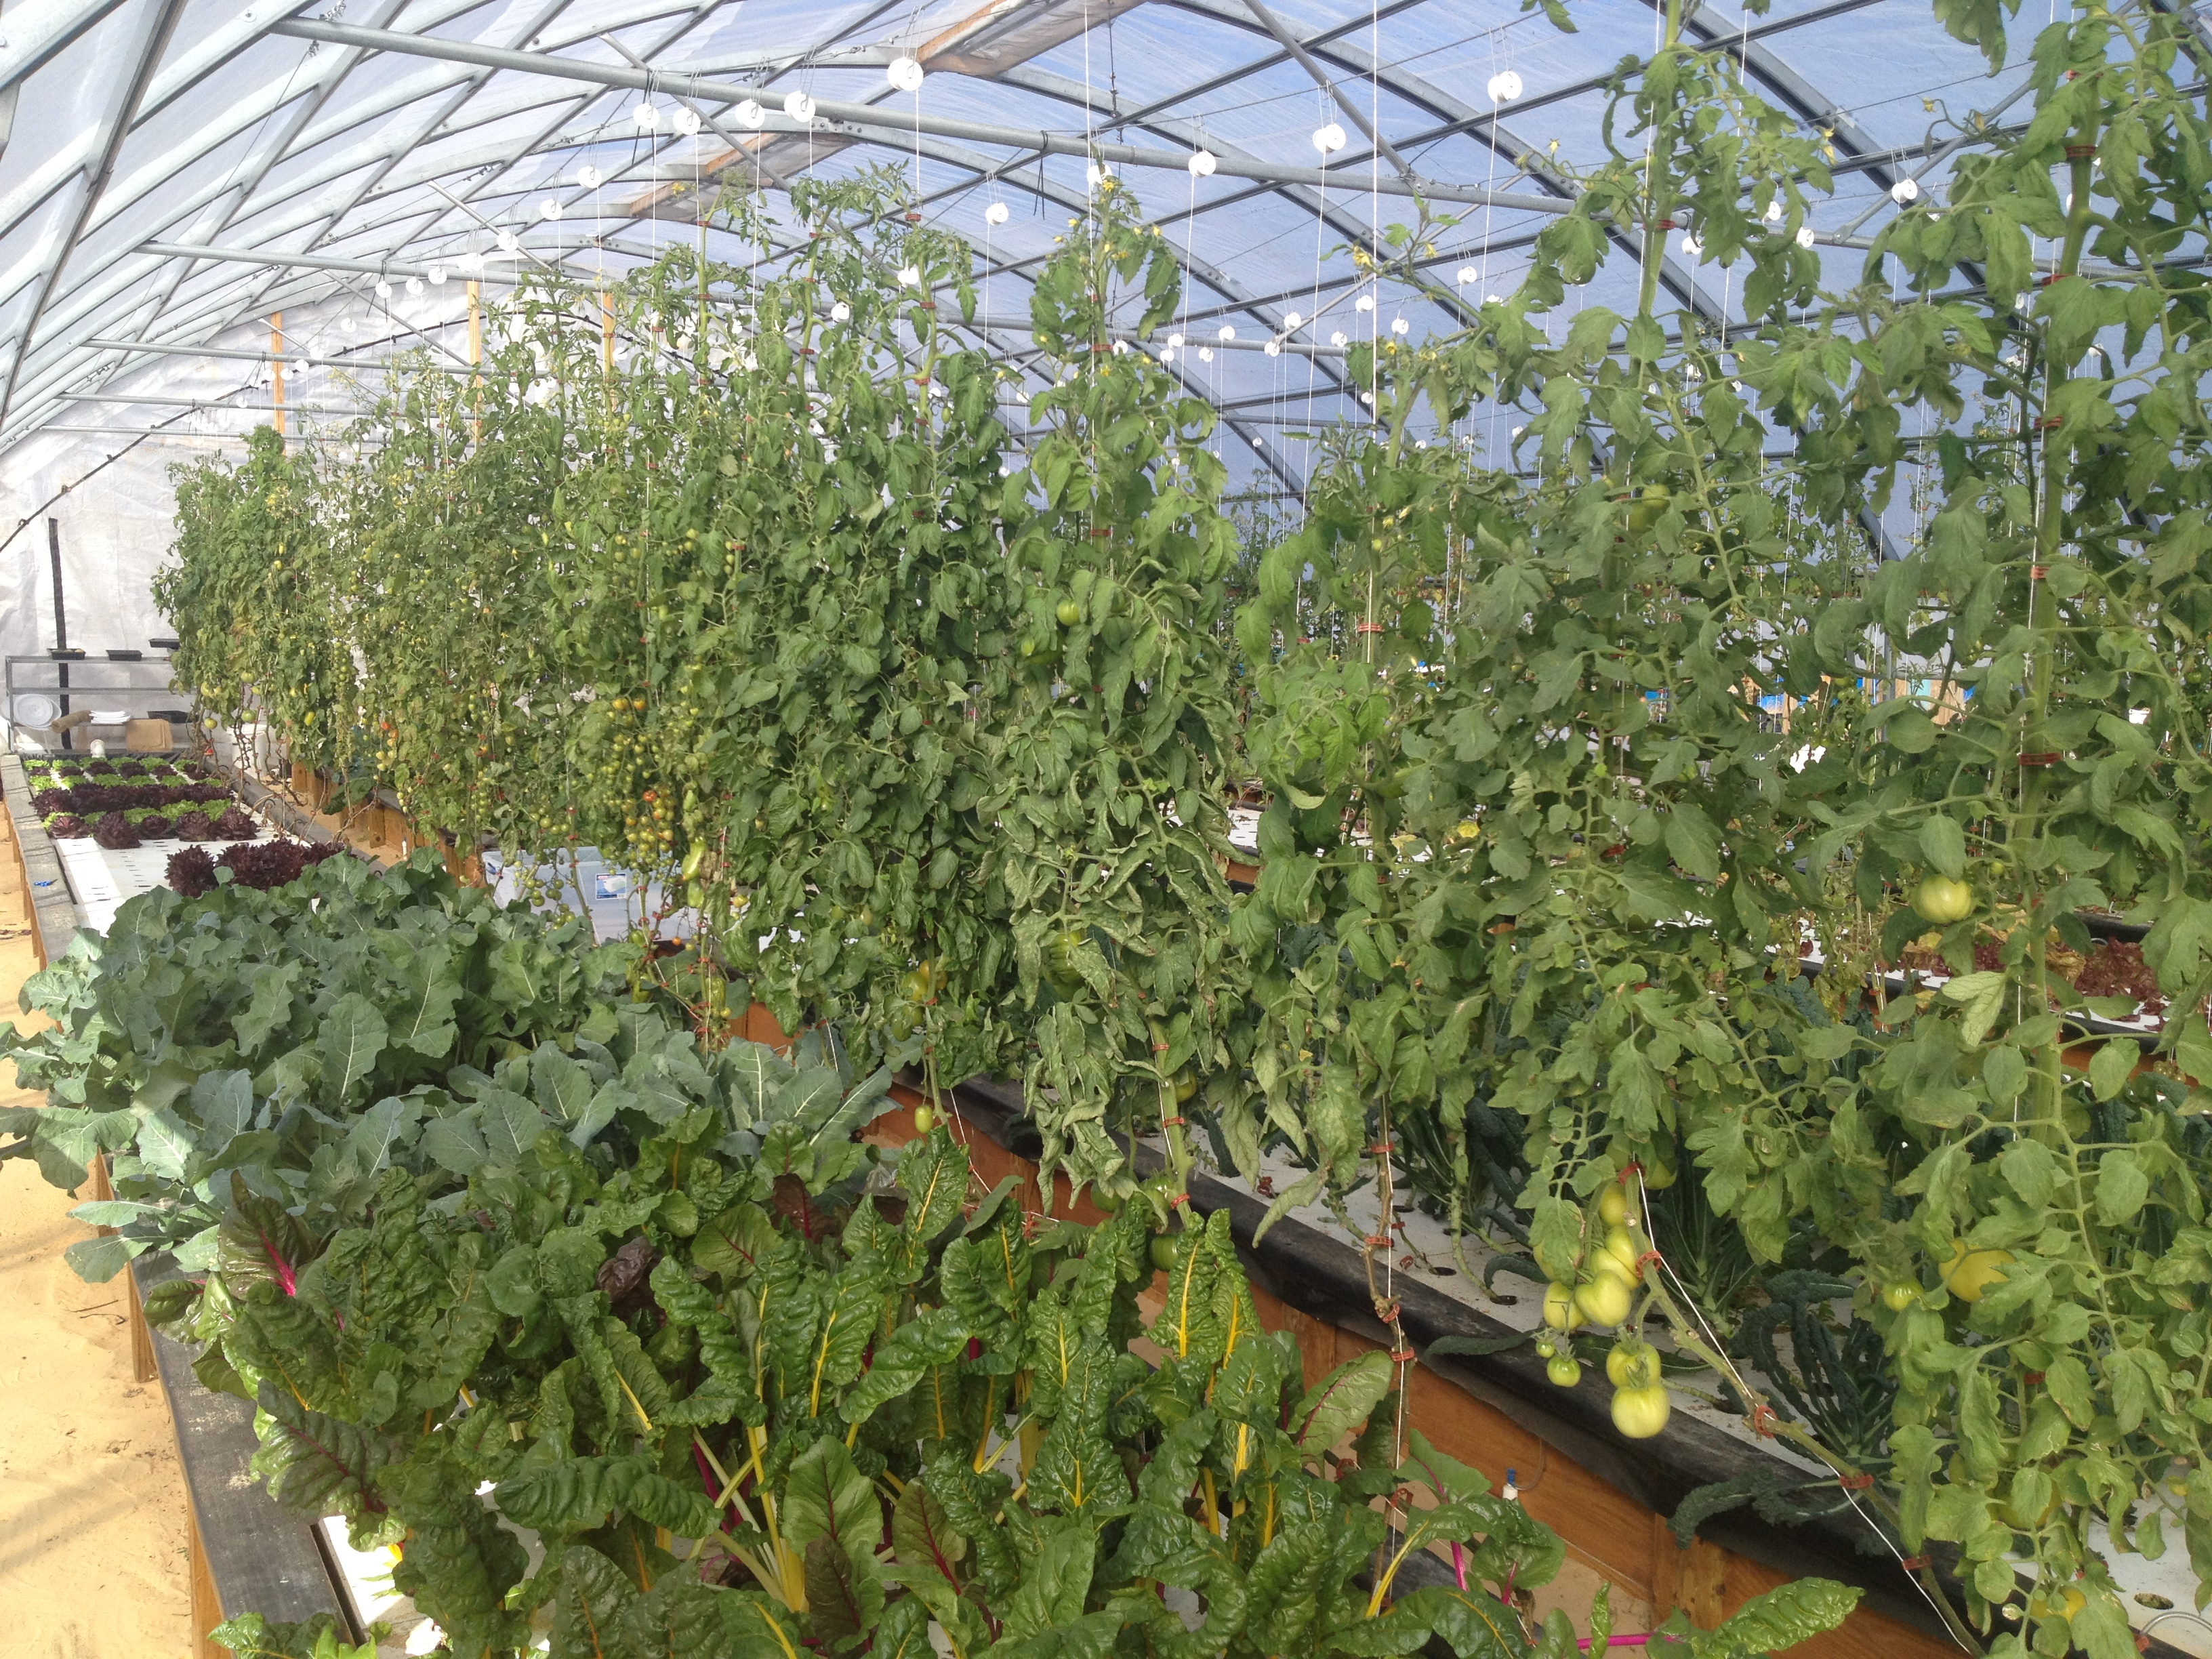 Home - College of Aquaponic Engineering & Design